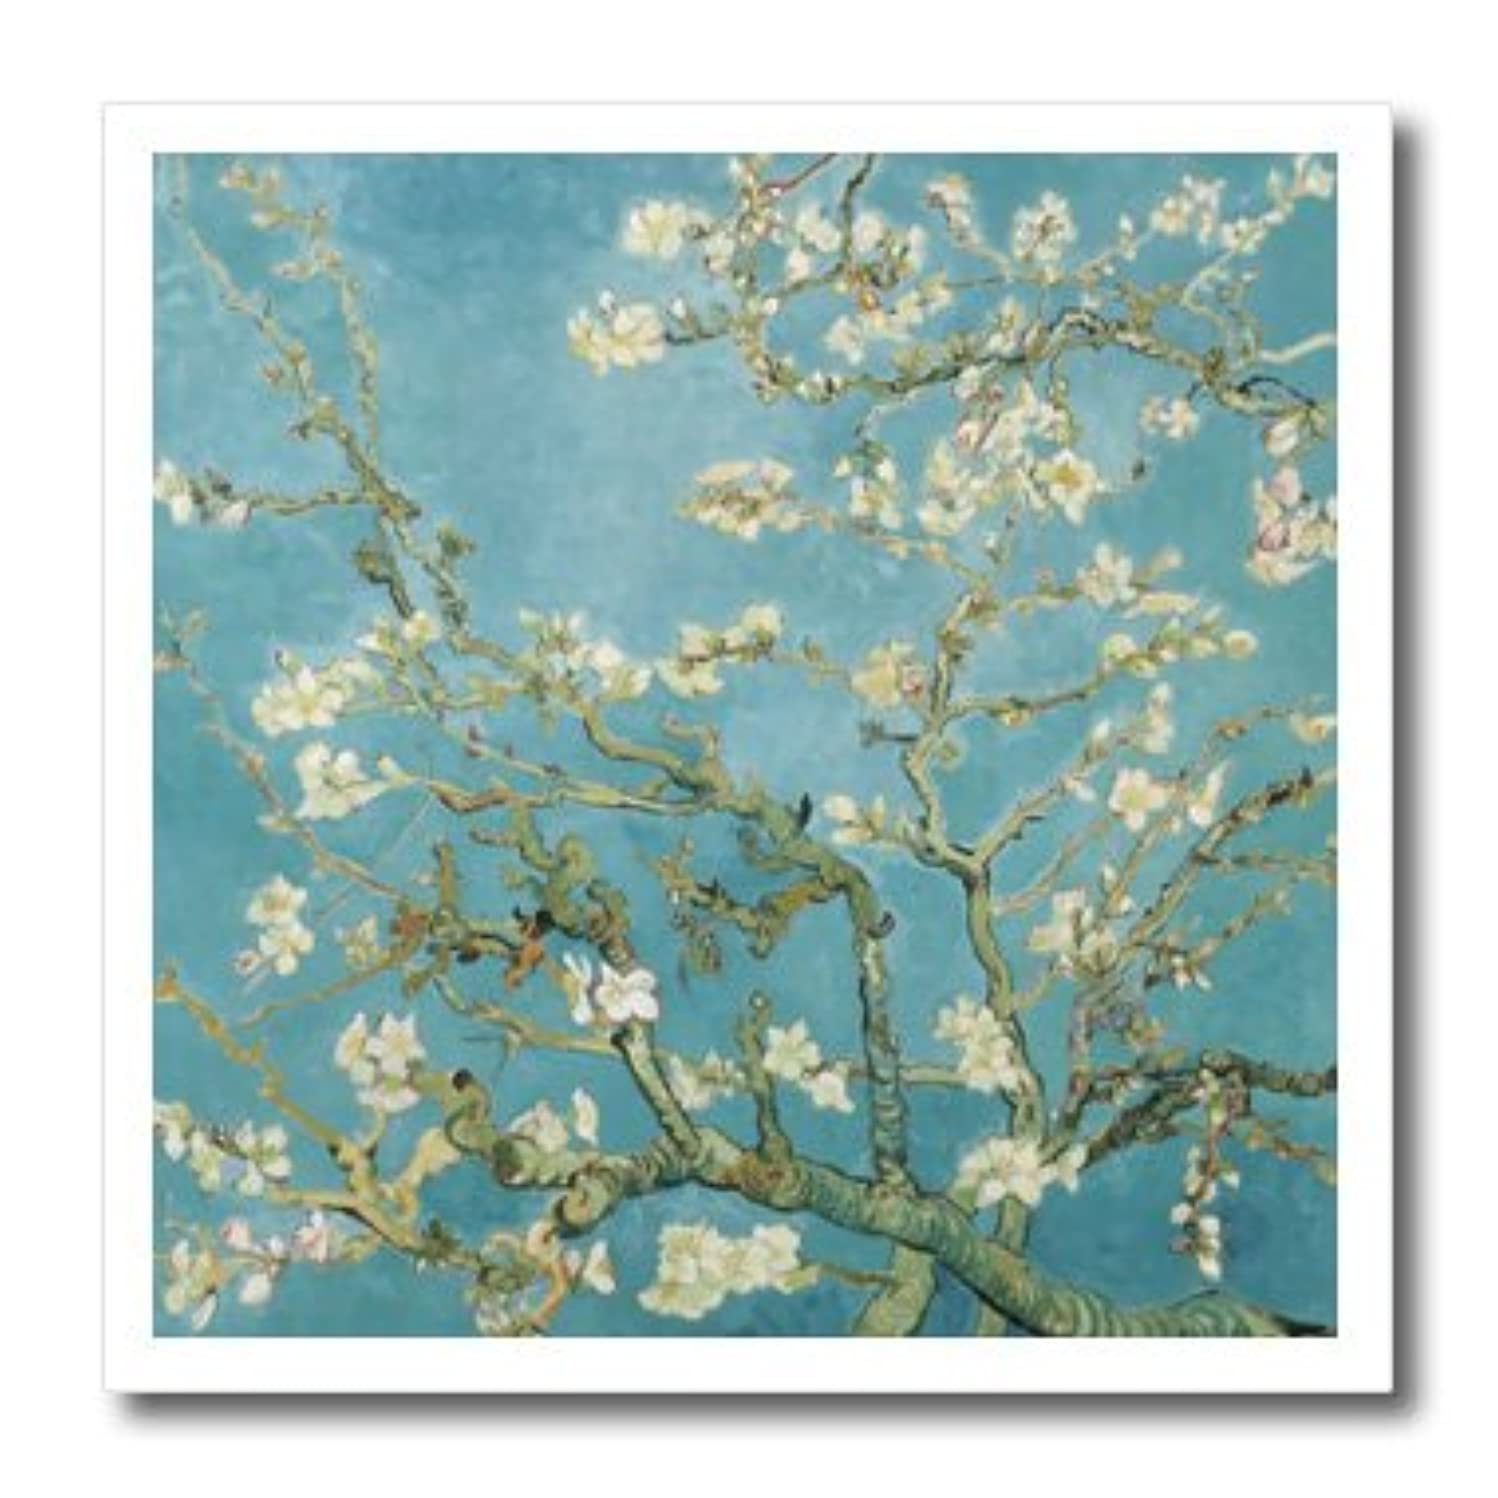 3dRose ht_155640_3 Vincent Can Gogh Classical Famous Fine Art Almond Blossoms 1890 White Flowers and Branches on Blue Iron on Heat Transfer for White Material, 10